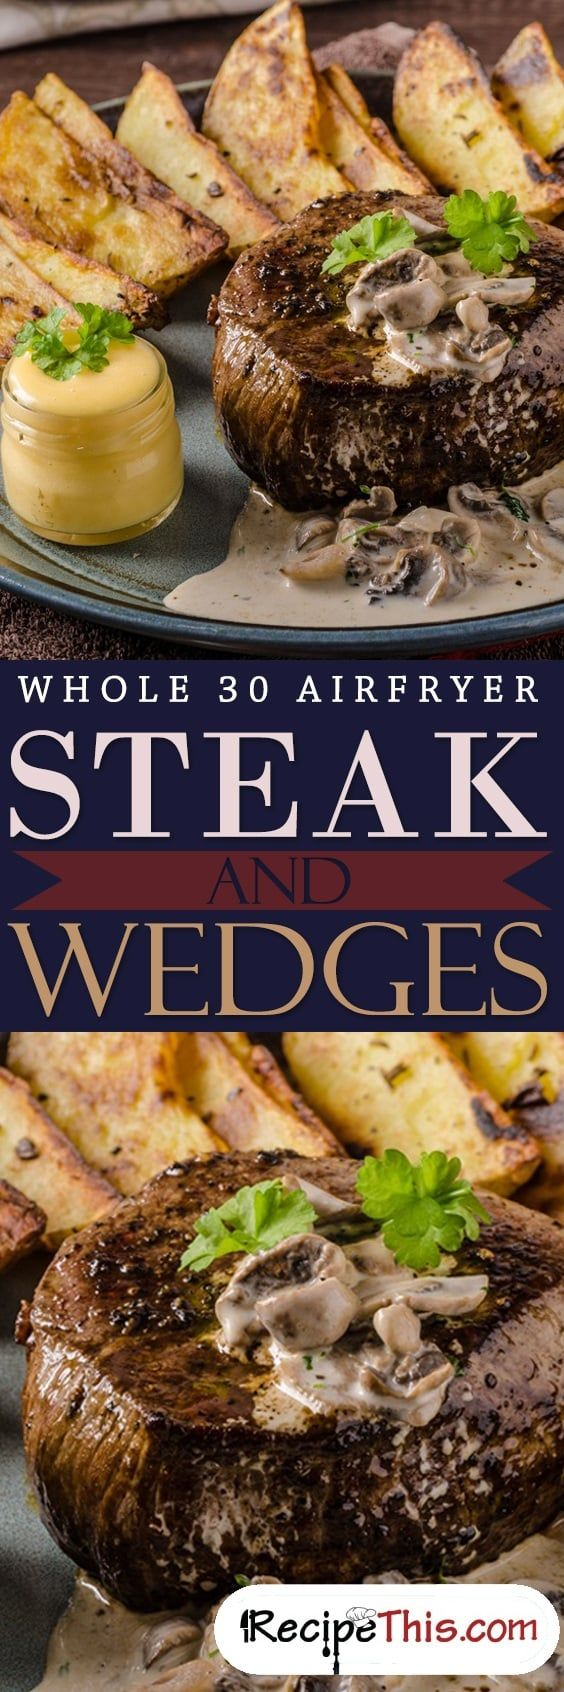 Whole 30 Airfryer Steak & Wedges Recipe This Recipe